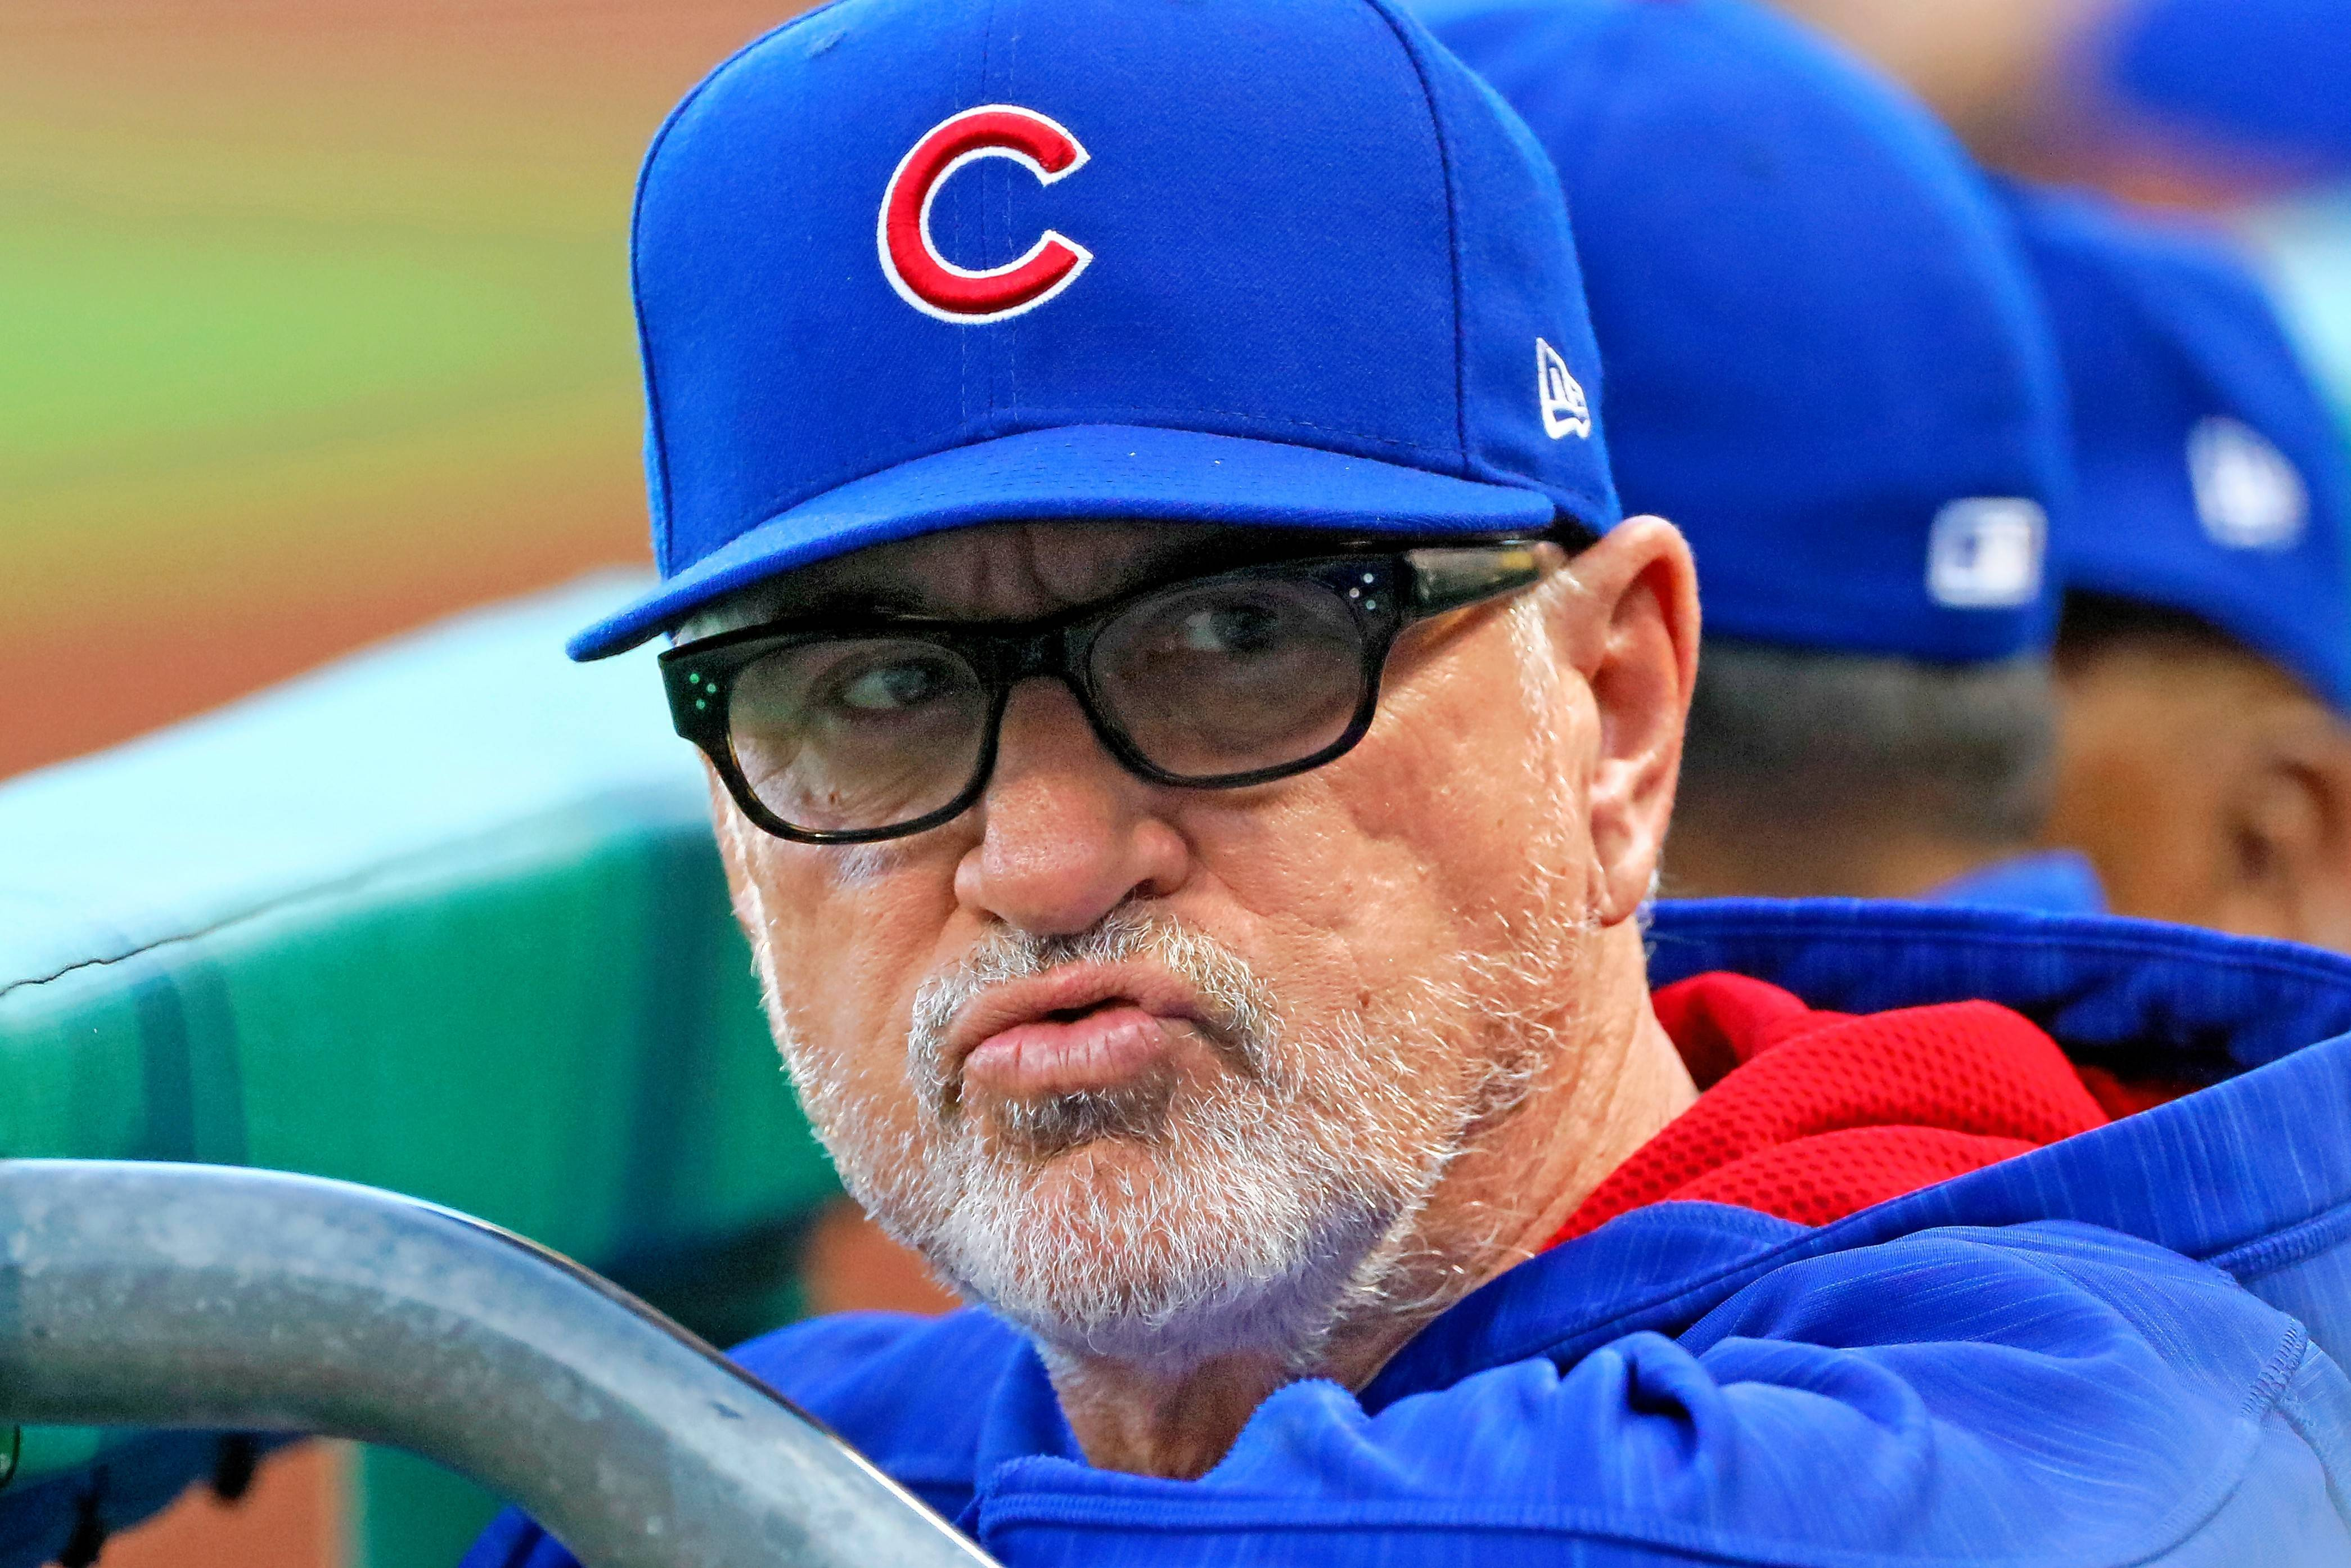 Chicago Cubs manager Joe Maddon believes his team's dominant run-differential last season was the product of a strong starting pitching staff more than its offense. The Cubs are far below last season's pace in many areas.